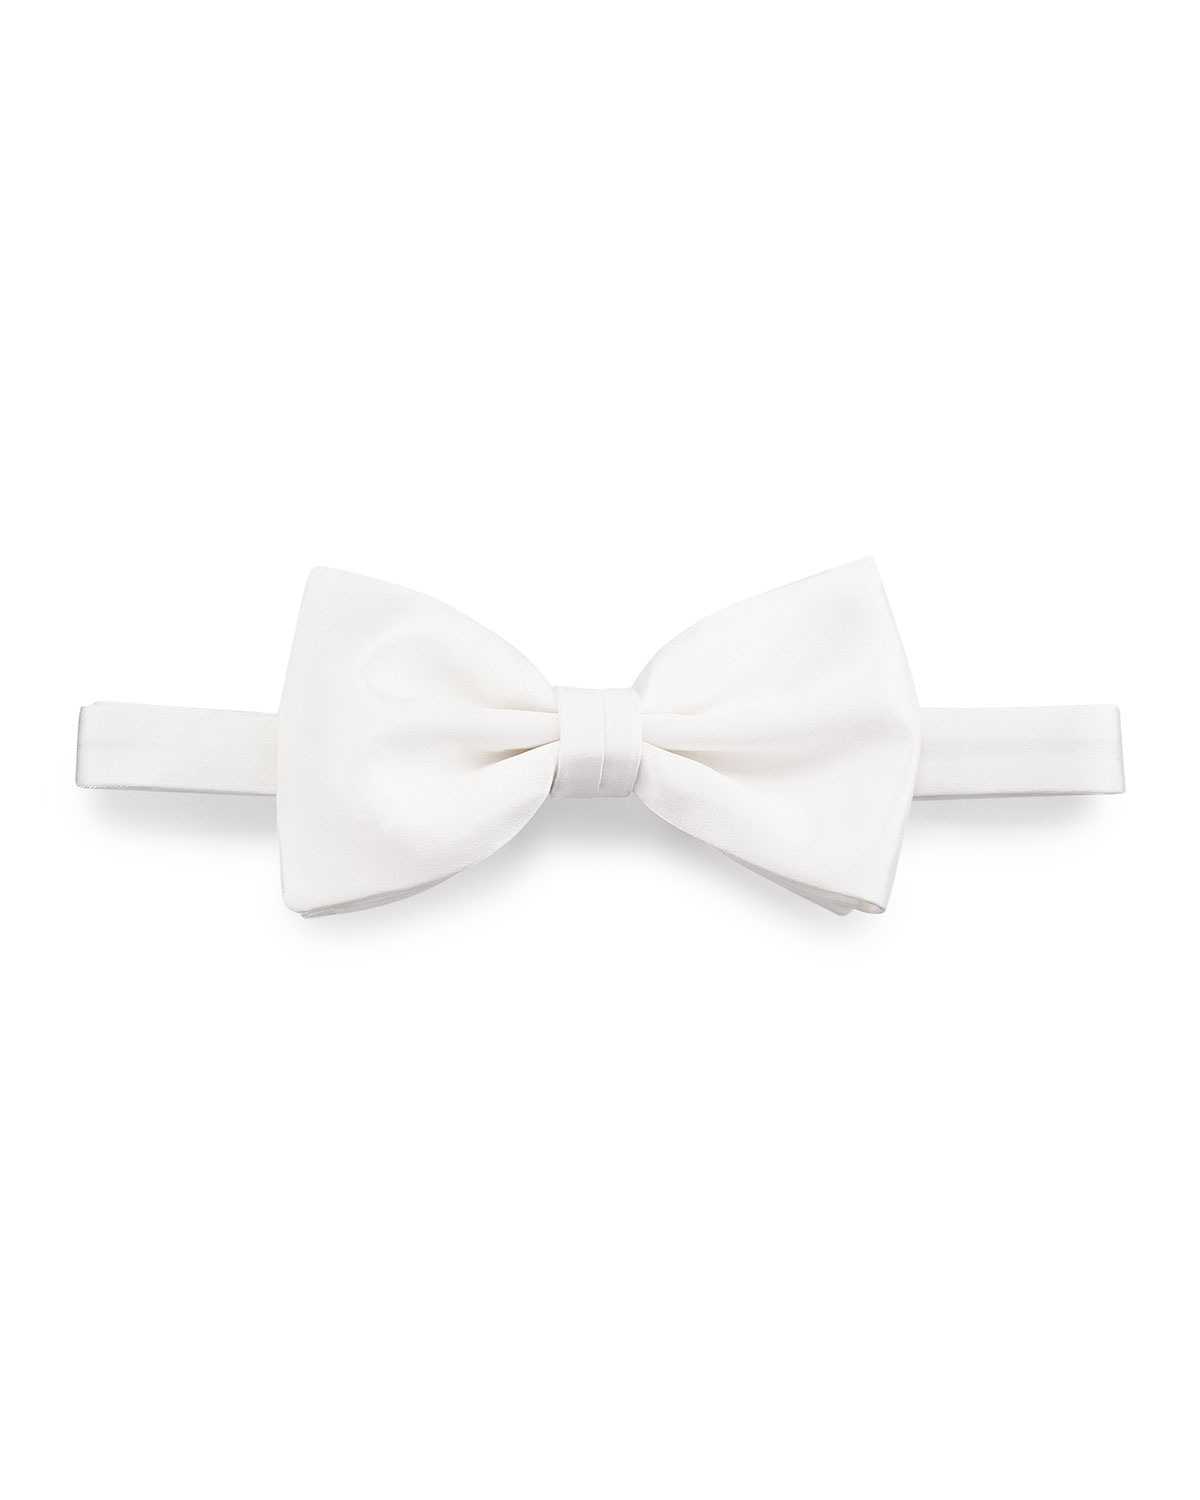 Brioni Satin Bow Tie, Off White